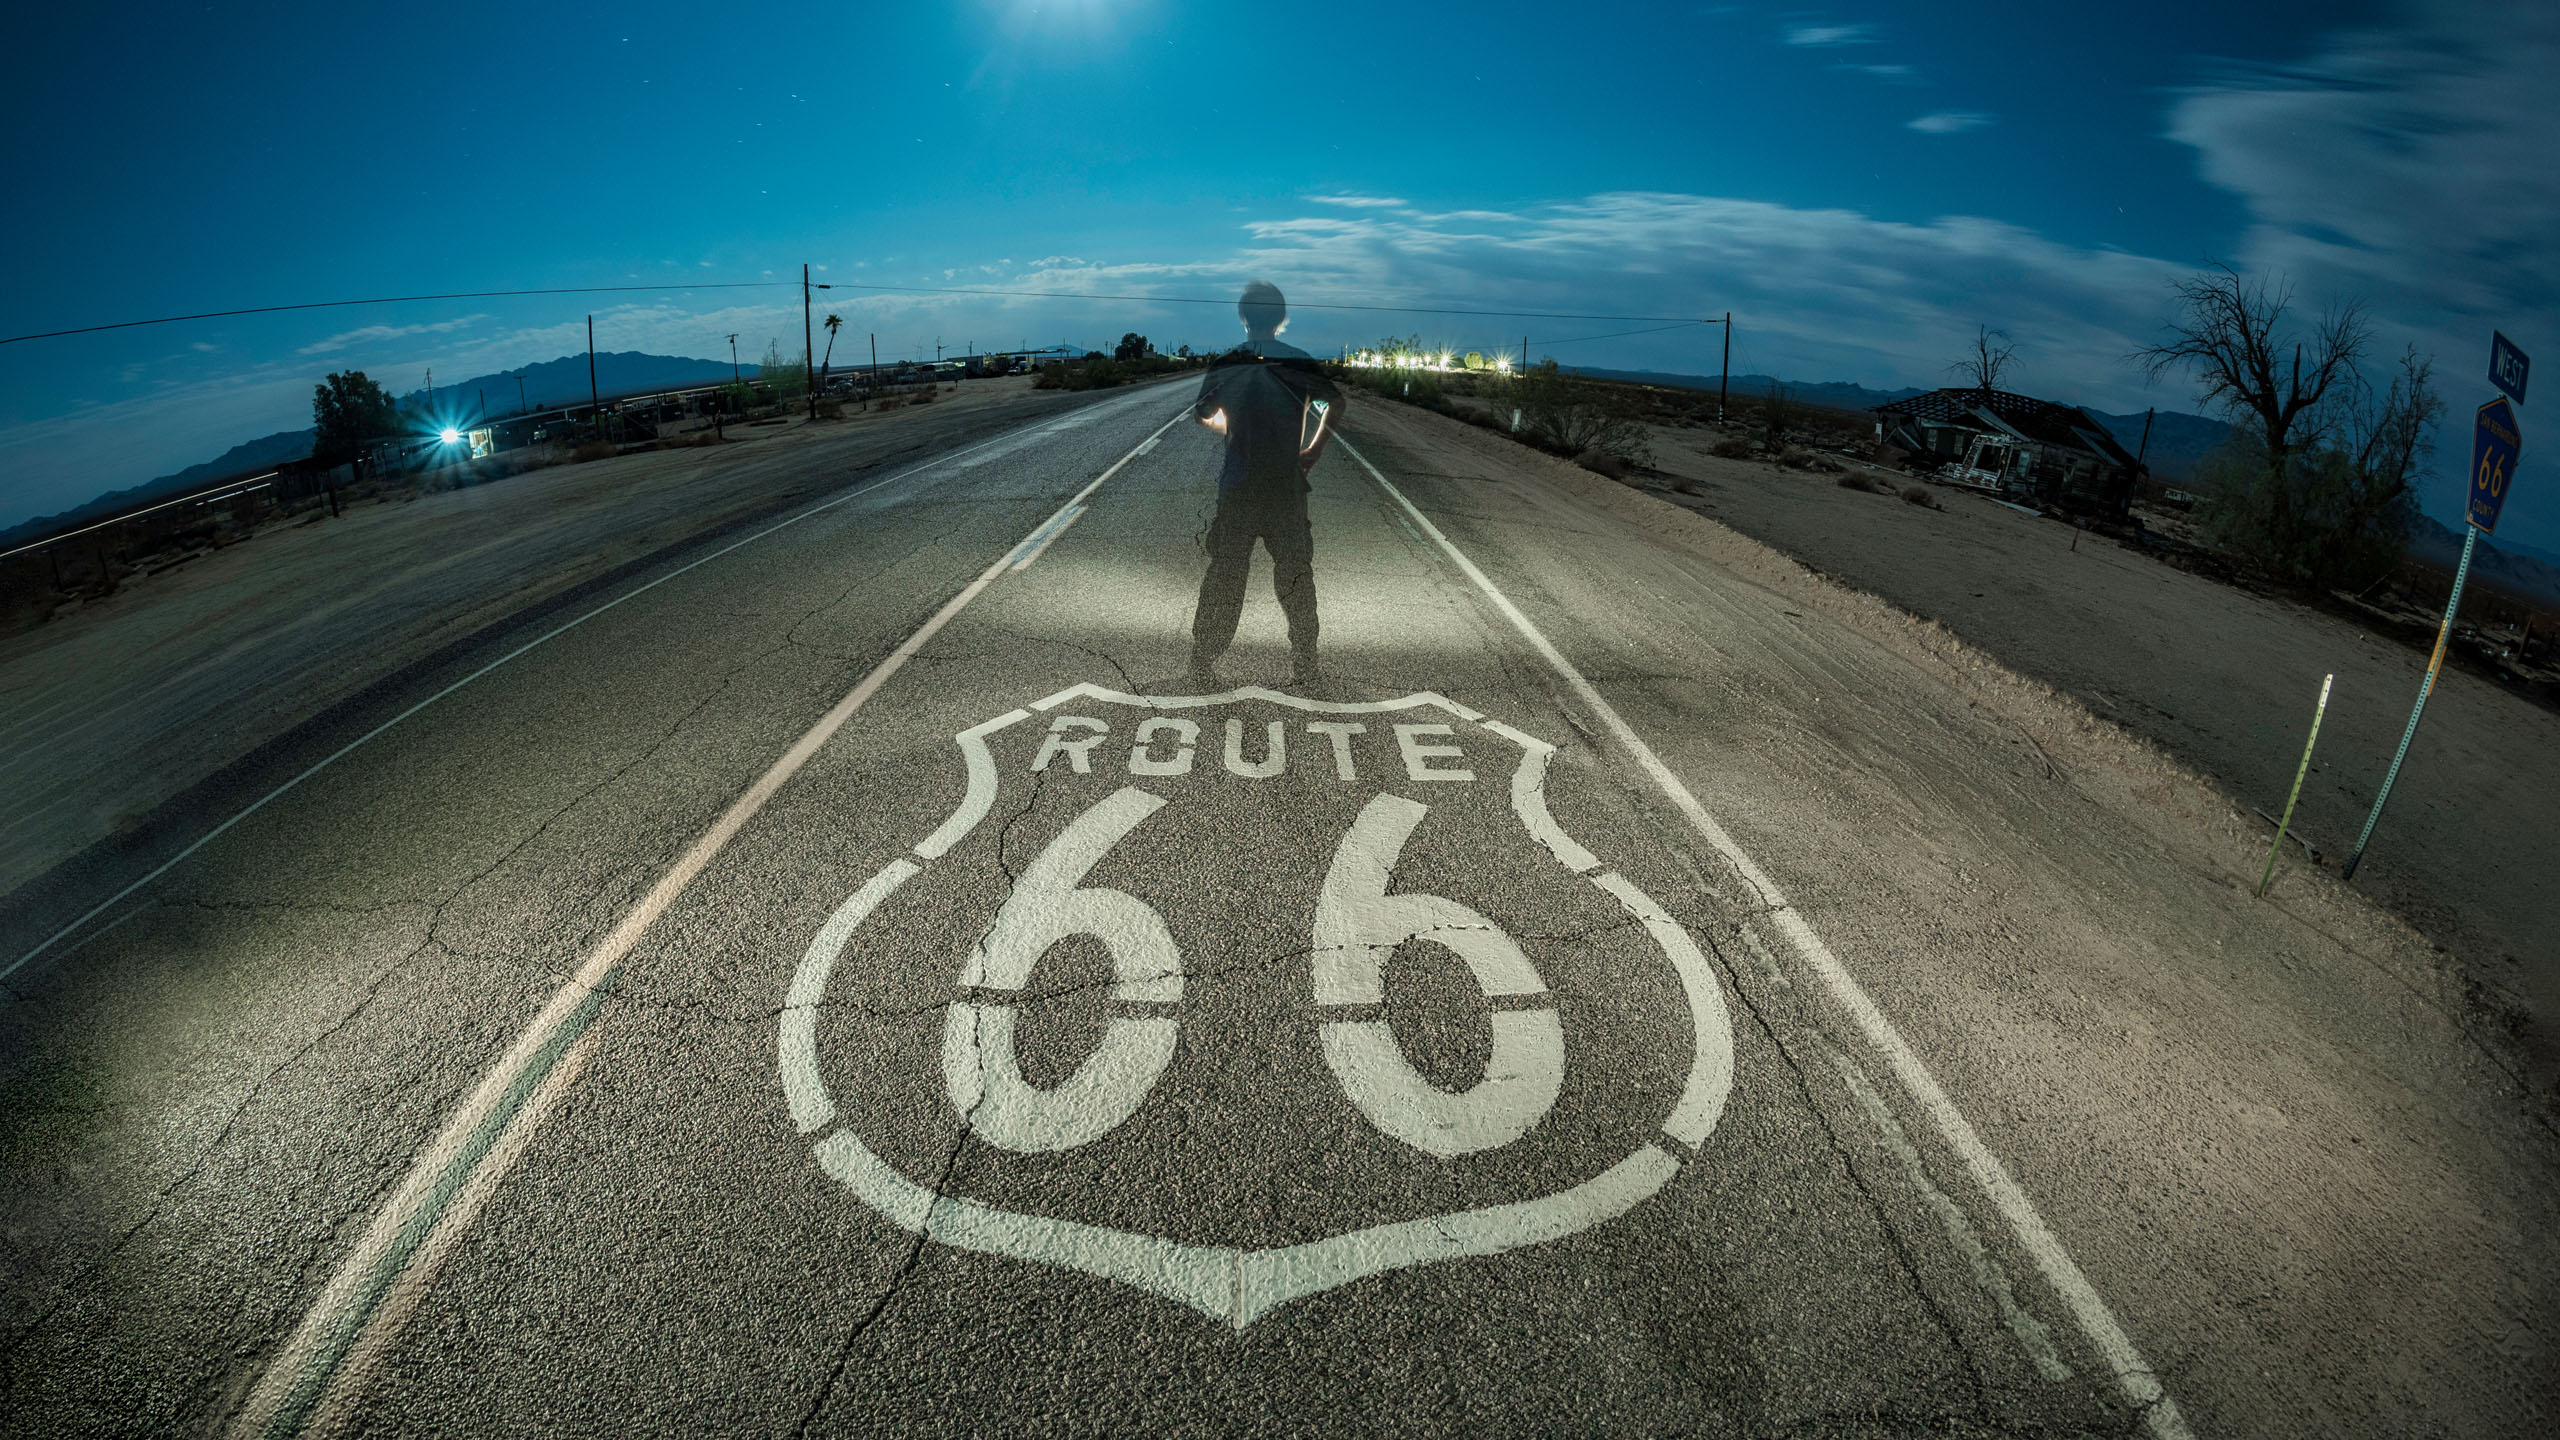 8016_kenlee_route66-mojave_210623_0057_70sf8iso320_essex_route66sign-road_HEADER-ROUTE-66-PHOTOFOCUS